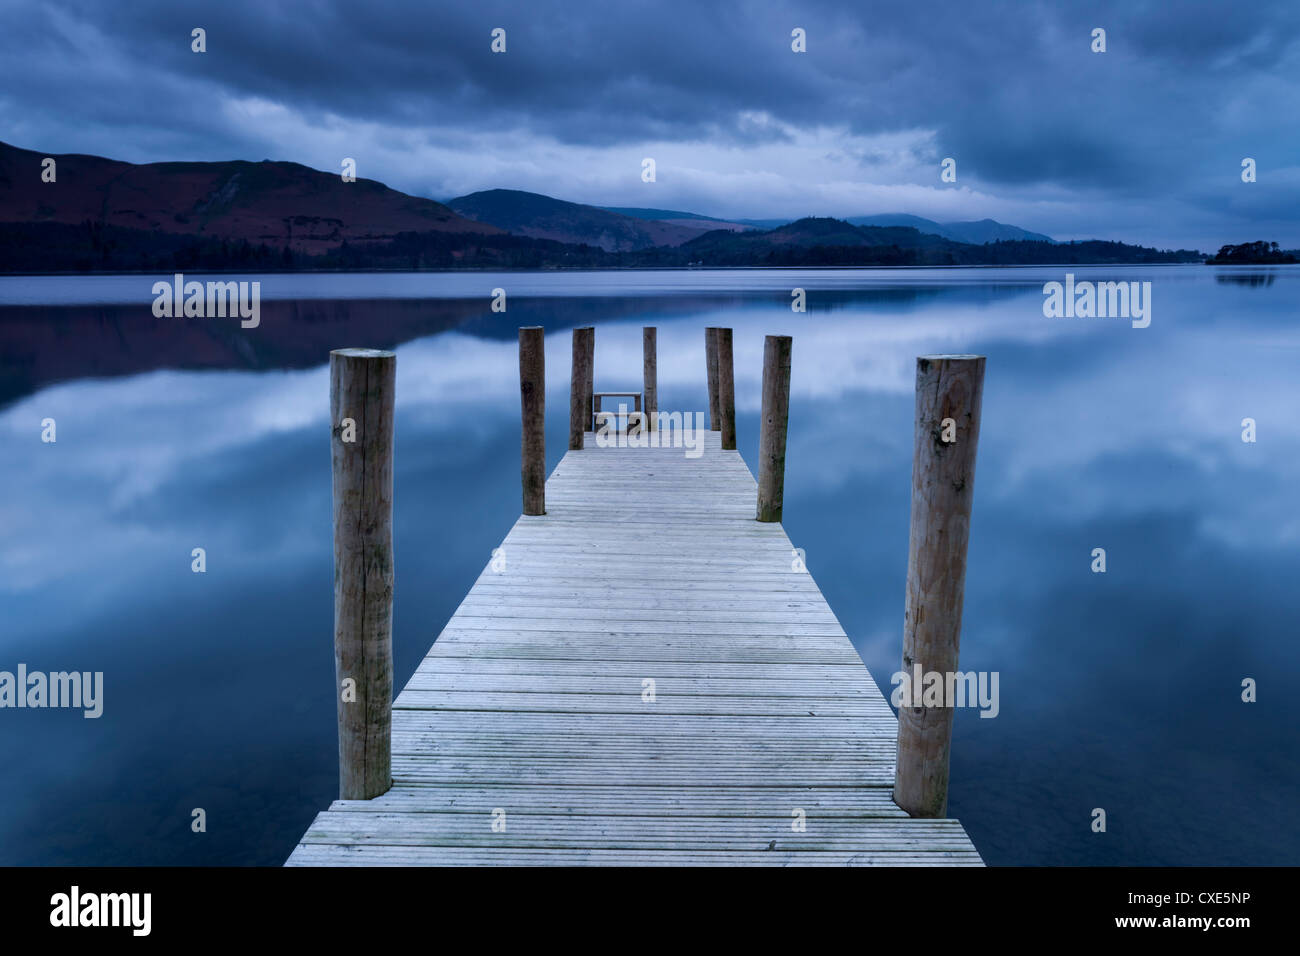 L'aube à Ashness'embarcadère sur Derwentwater, Keswick, Parc National de Lake District, Cumbria, Photo Stock